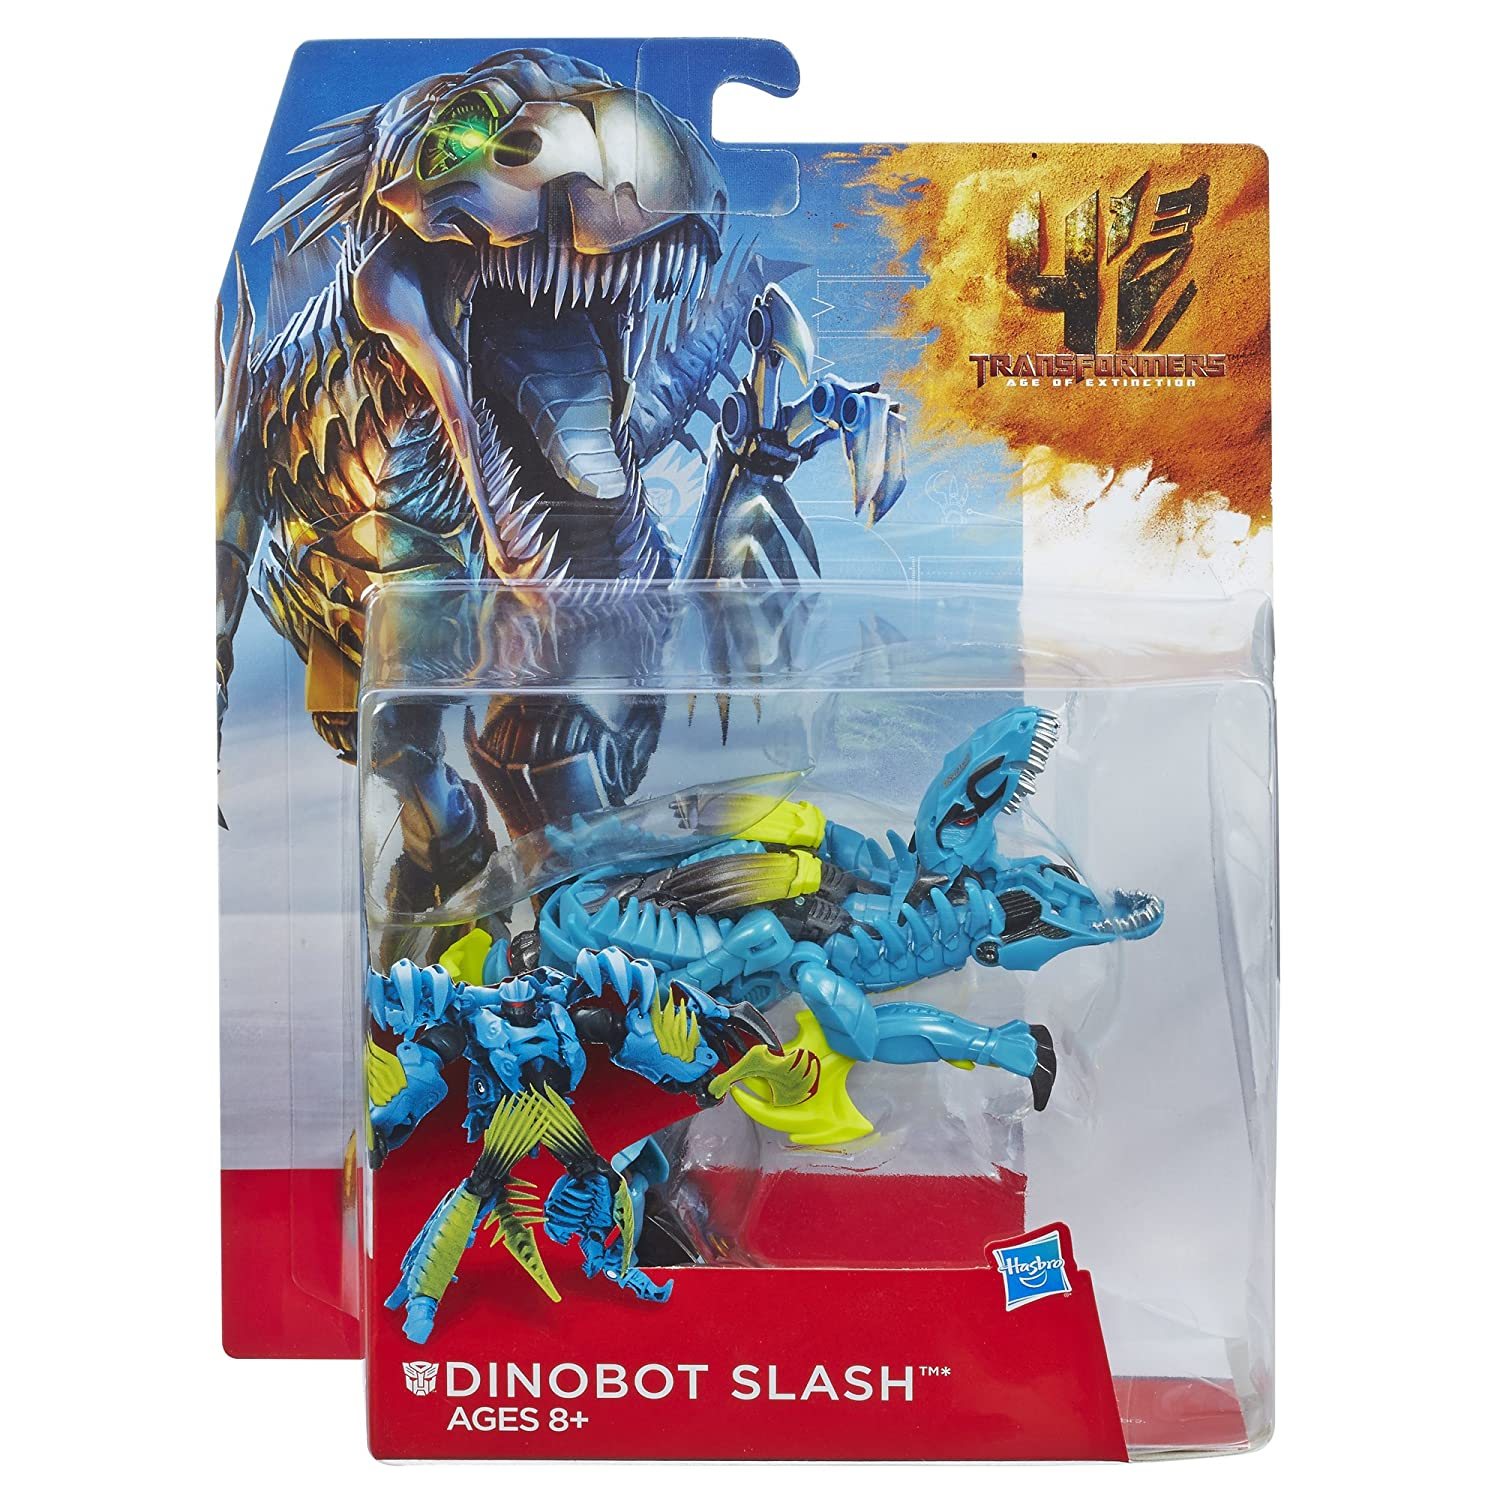 Transformers Age of Extinction Generations Deluxe Class Dinobot Slash Figure Hasbro A7815000